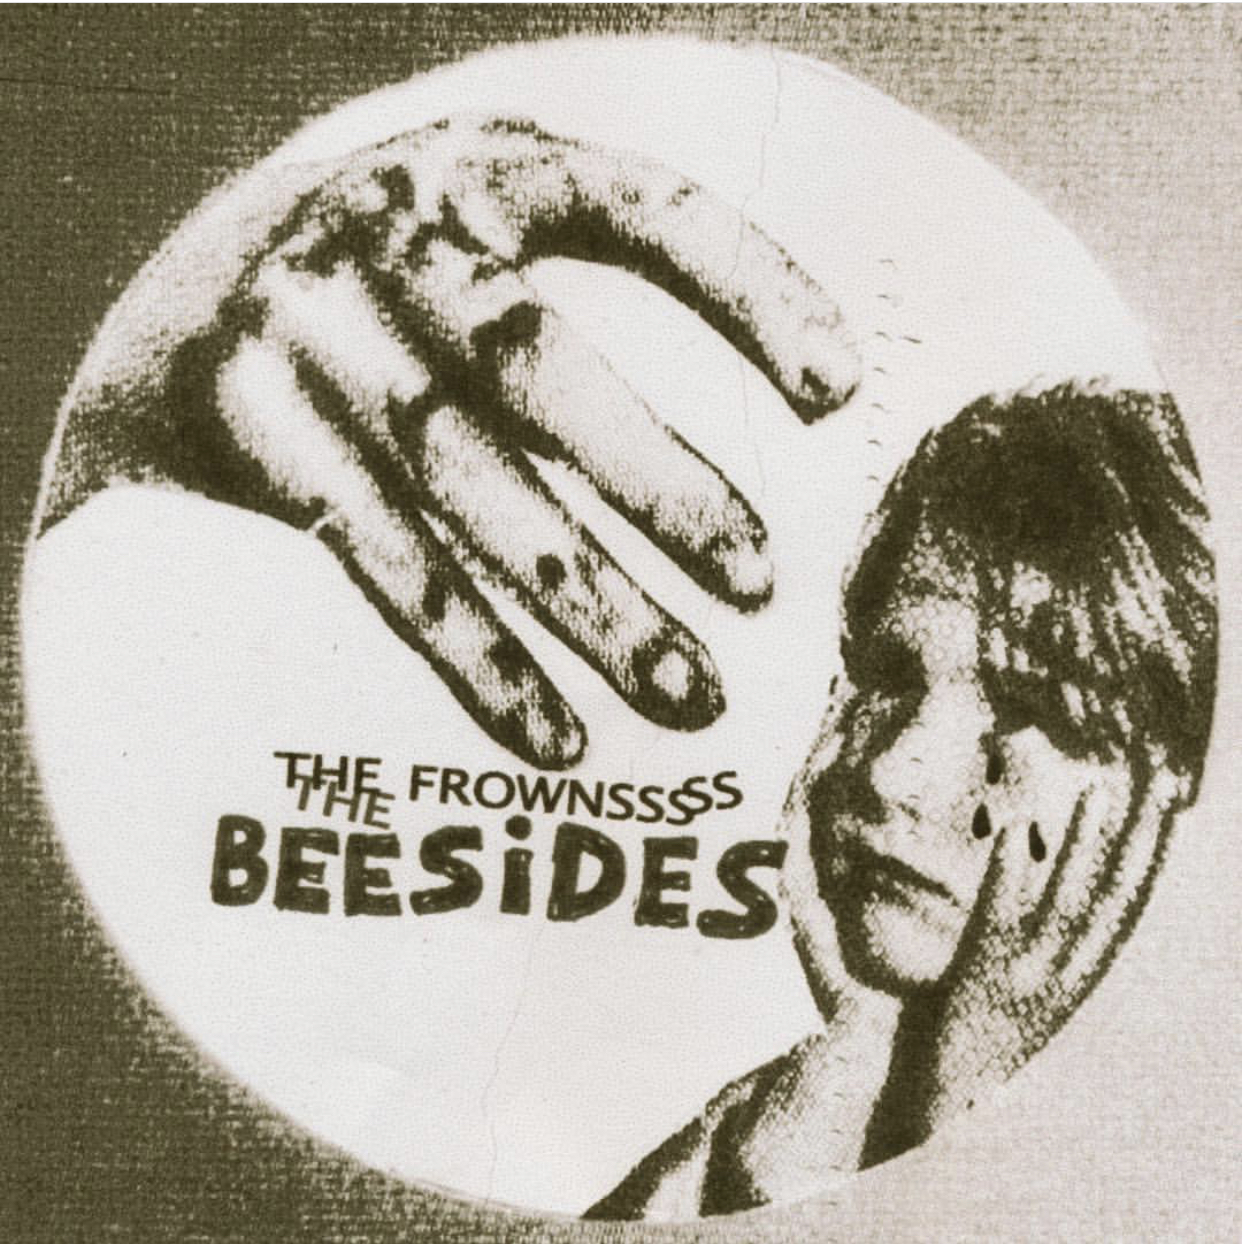 Beesides   The Frownsss